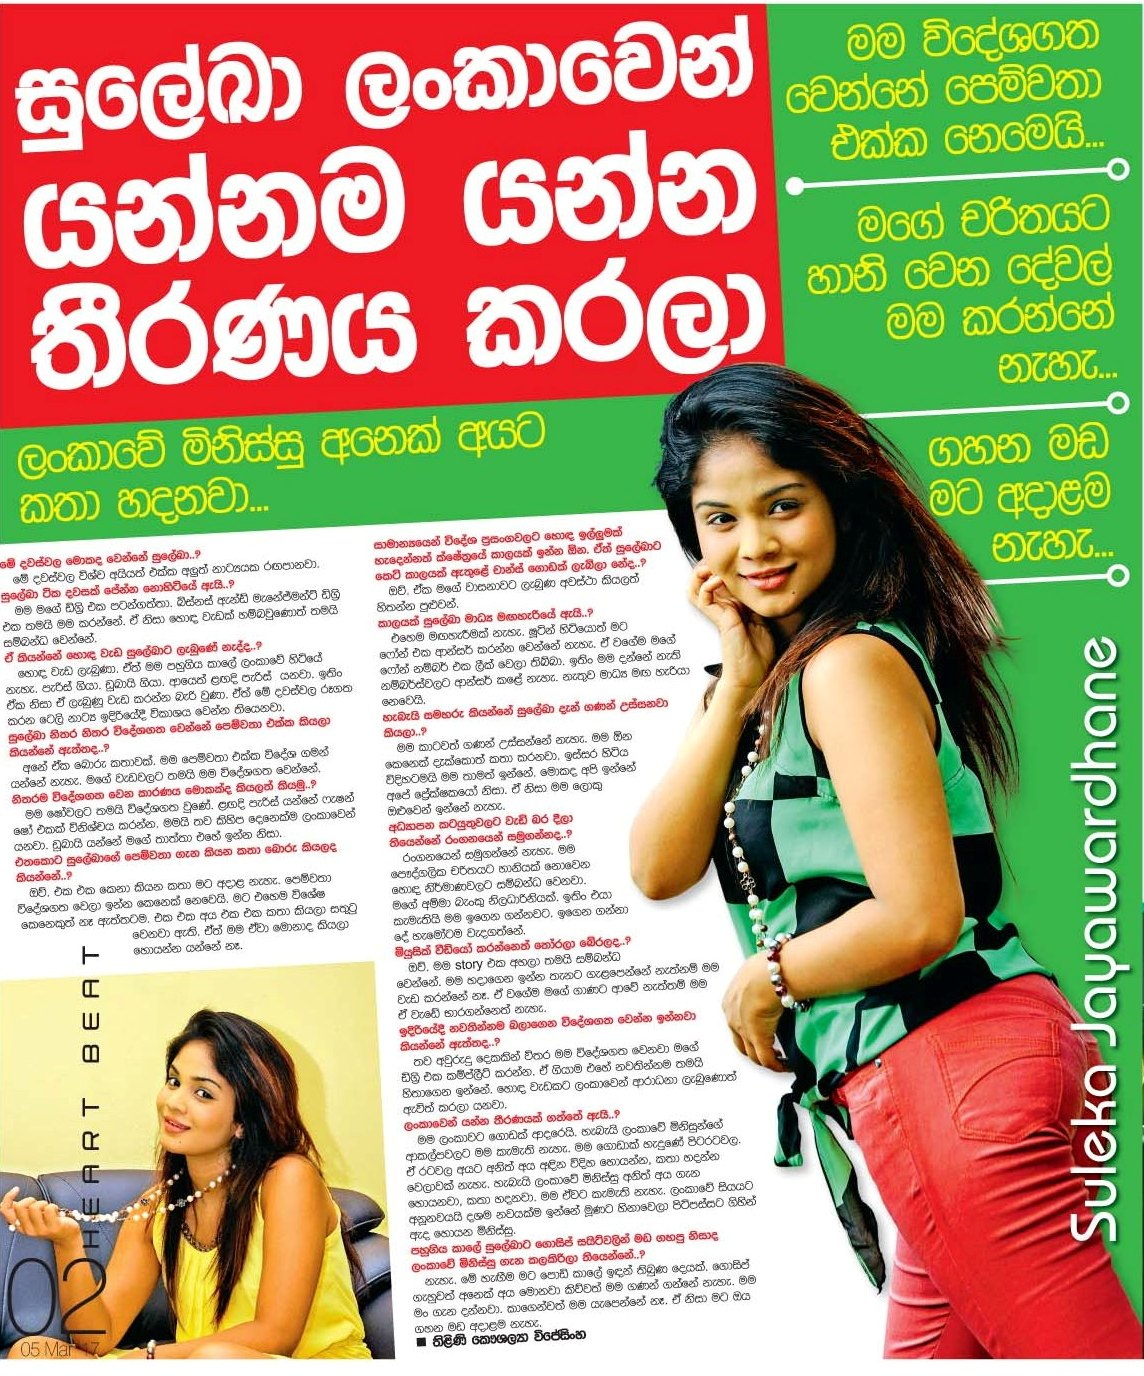 Gossip Chat With Suleka Jayawardena